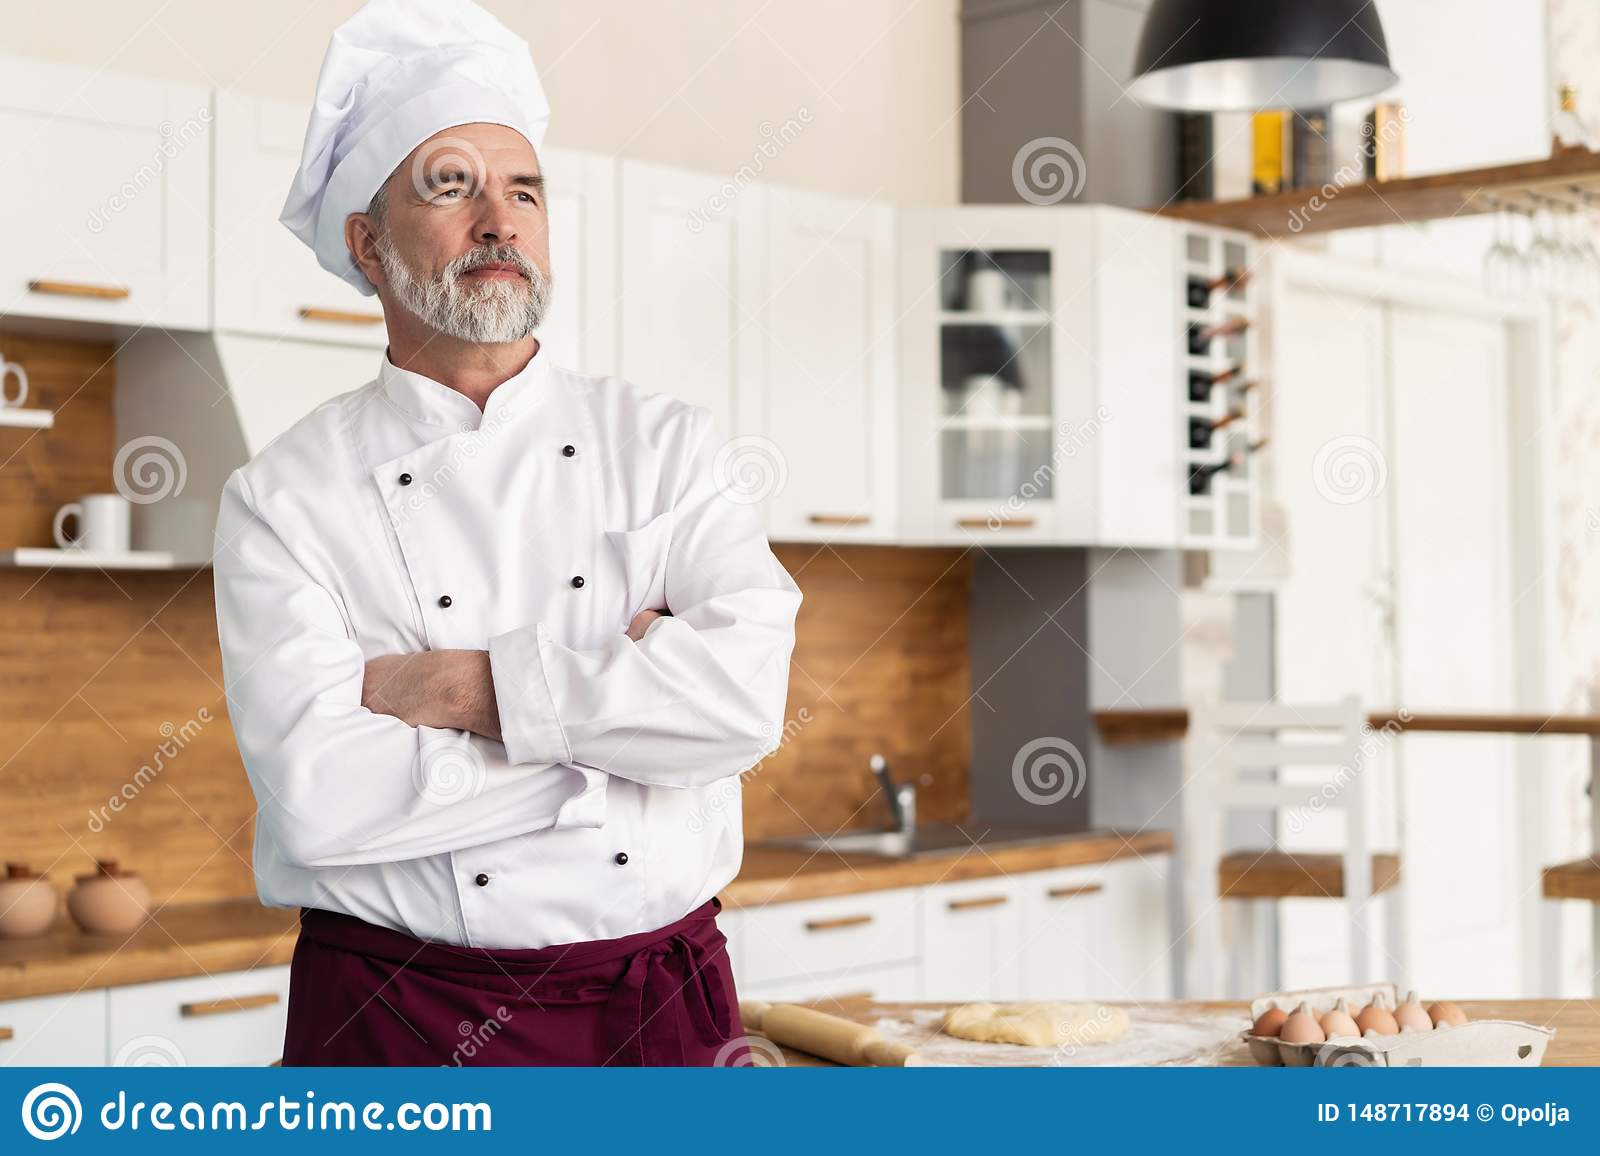 Attractive Caucasian chef standing with arms crossed in a restaurant kitchen